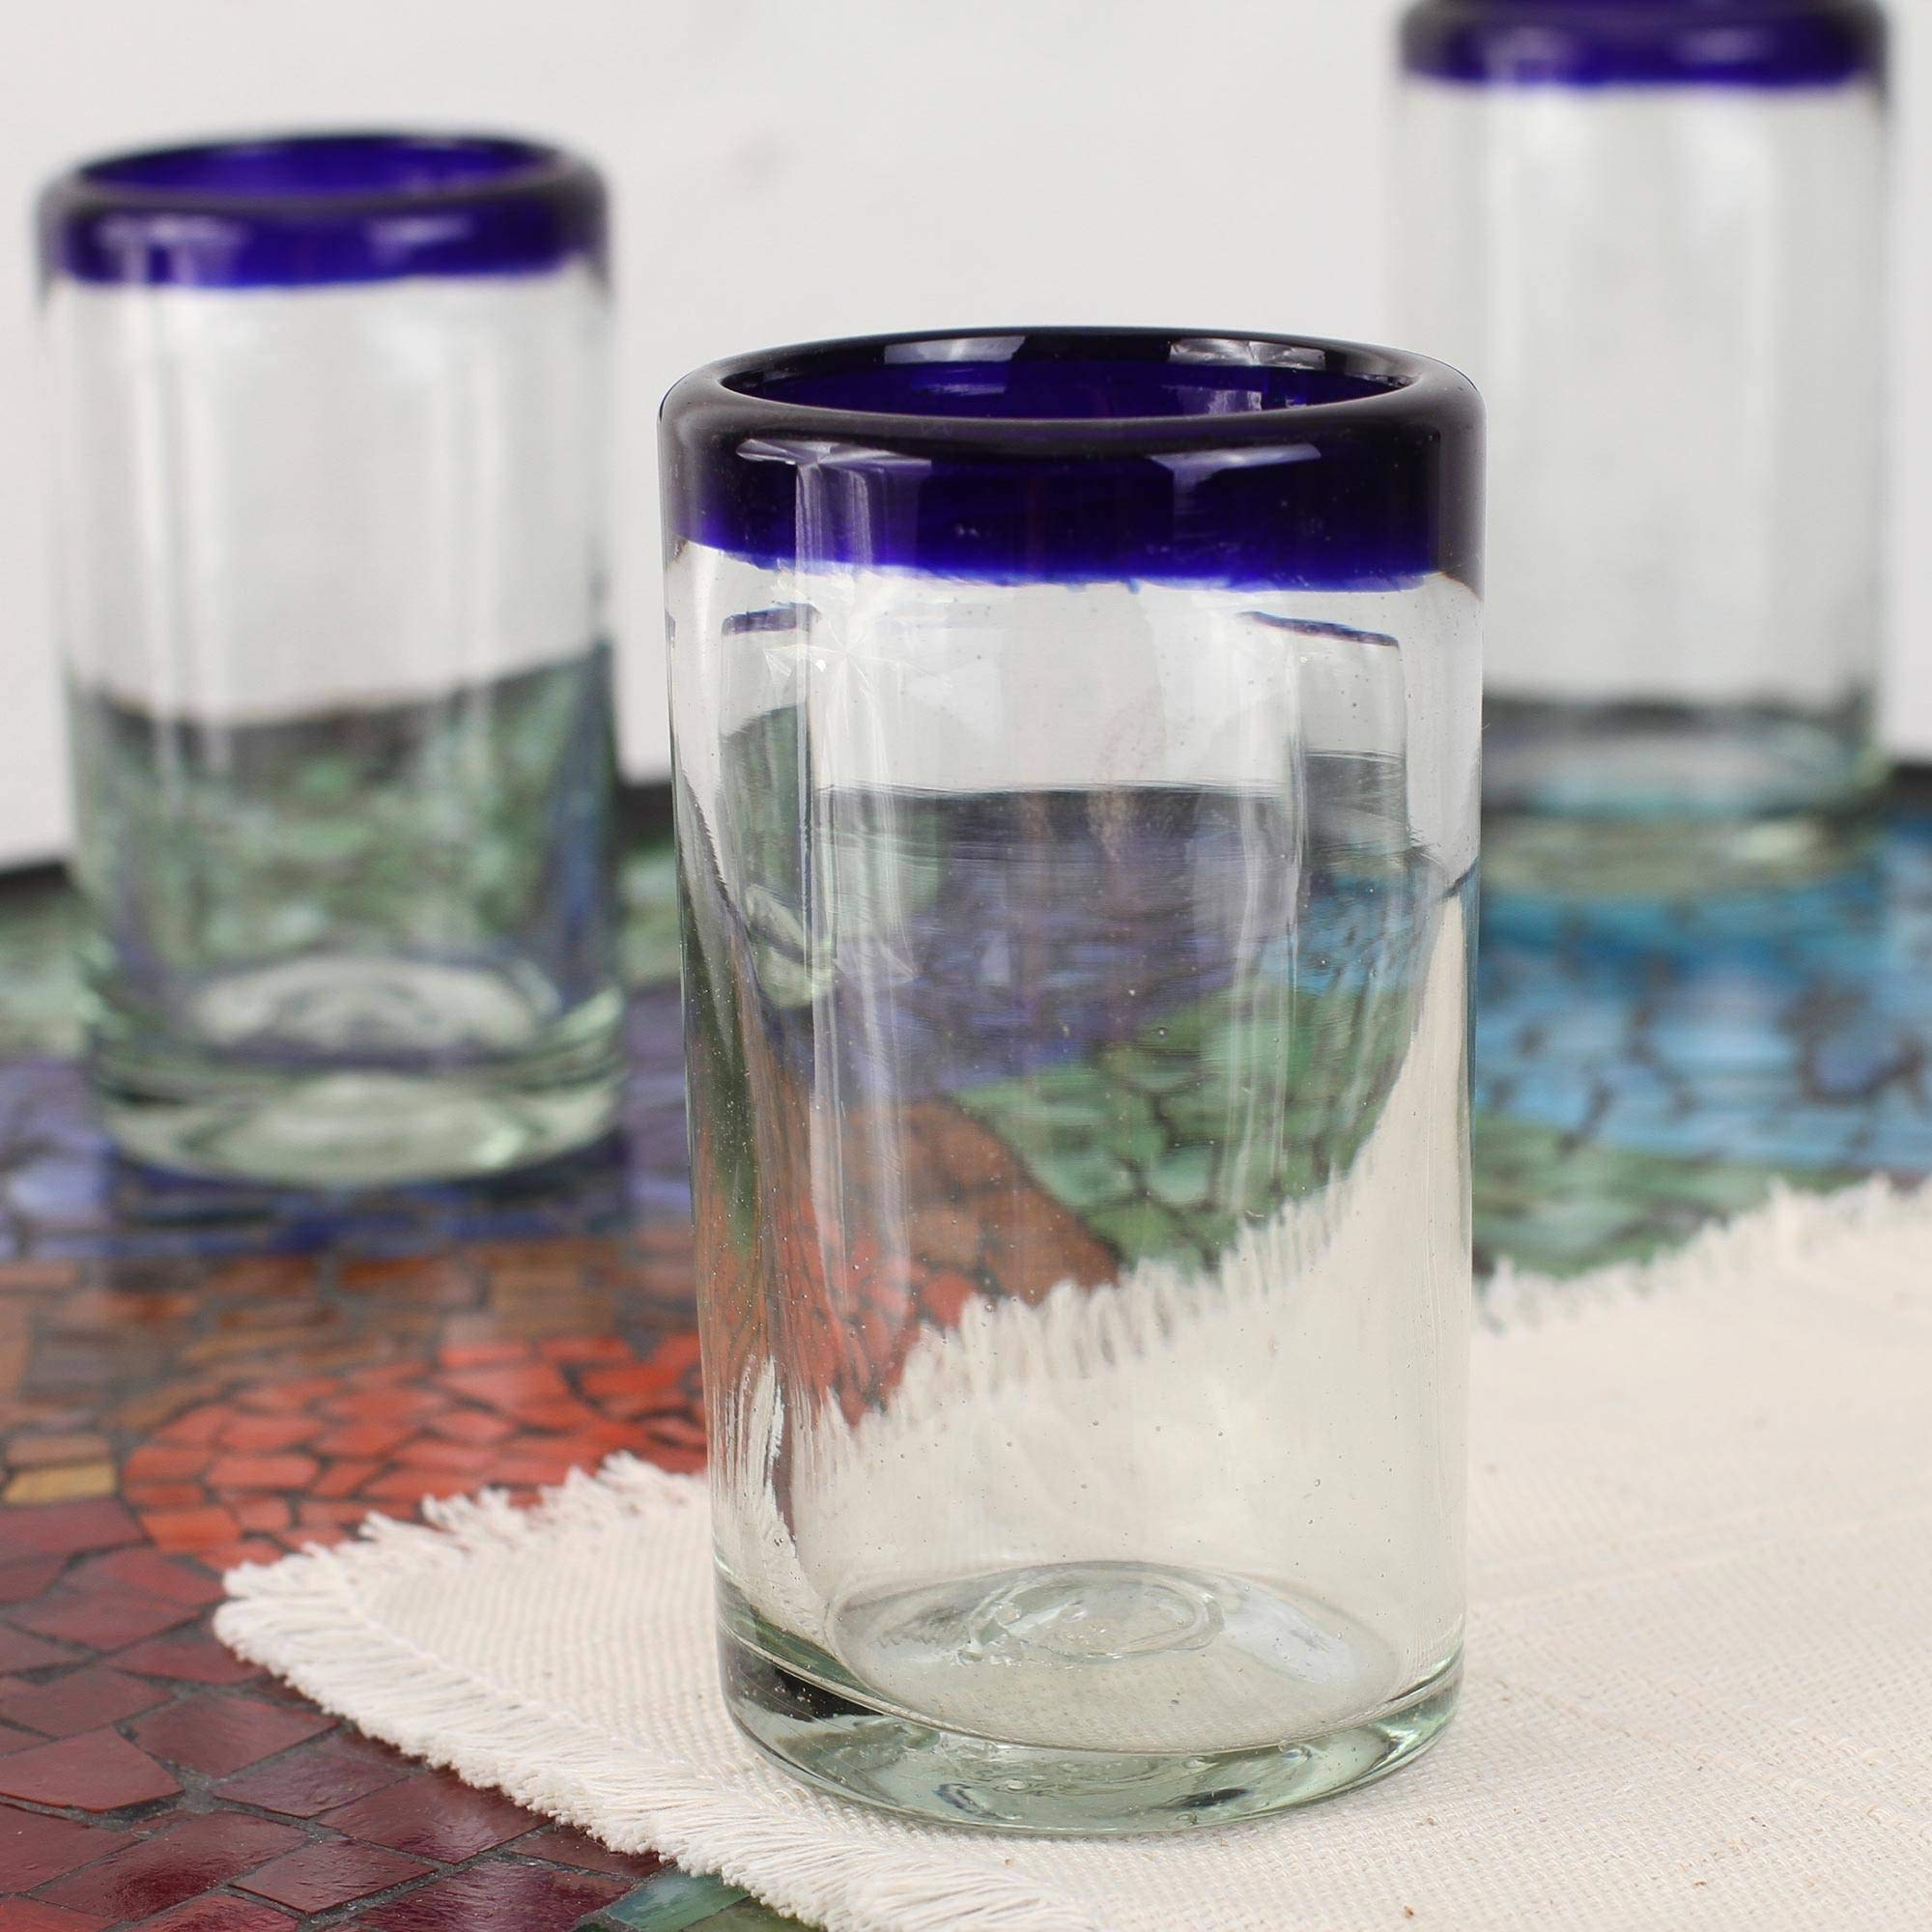 NOVICA Artisan Crafted Hand Blown Clear Blue Rim Recycled Glass Juice Glasses, 8 oz. 'Cobalt' (set of 6) by NOVICA (Image #3)